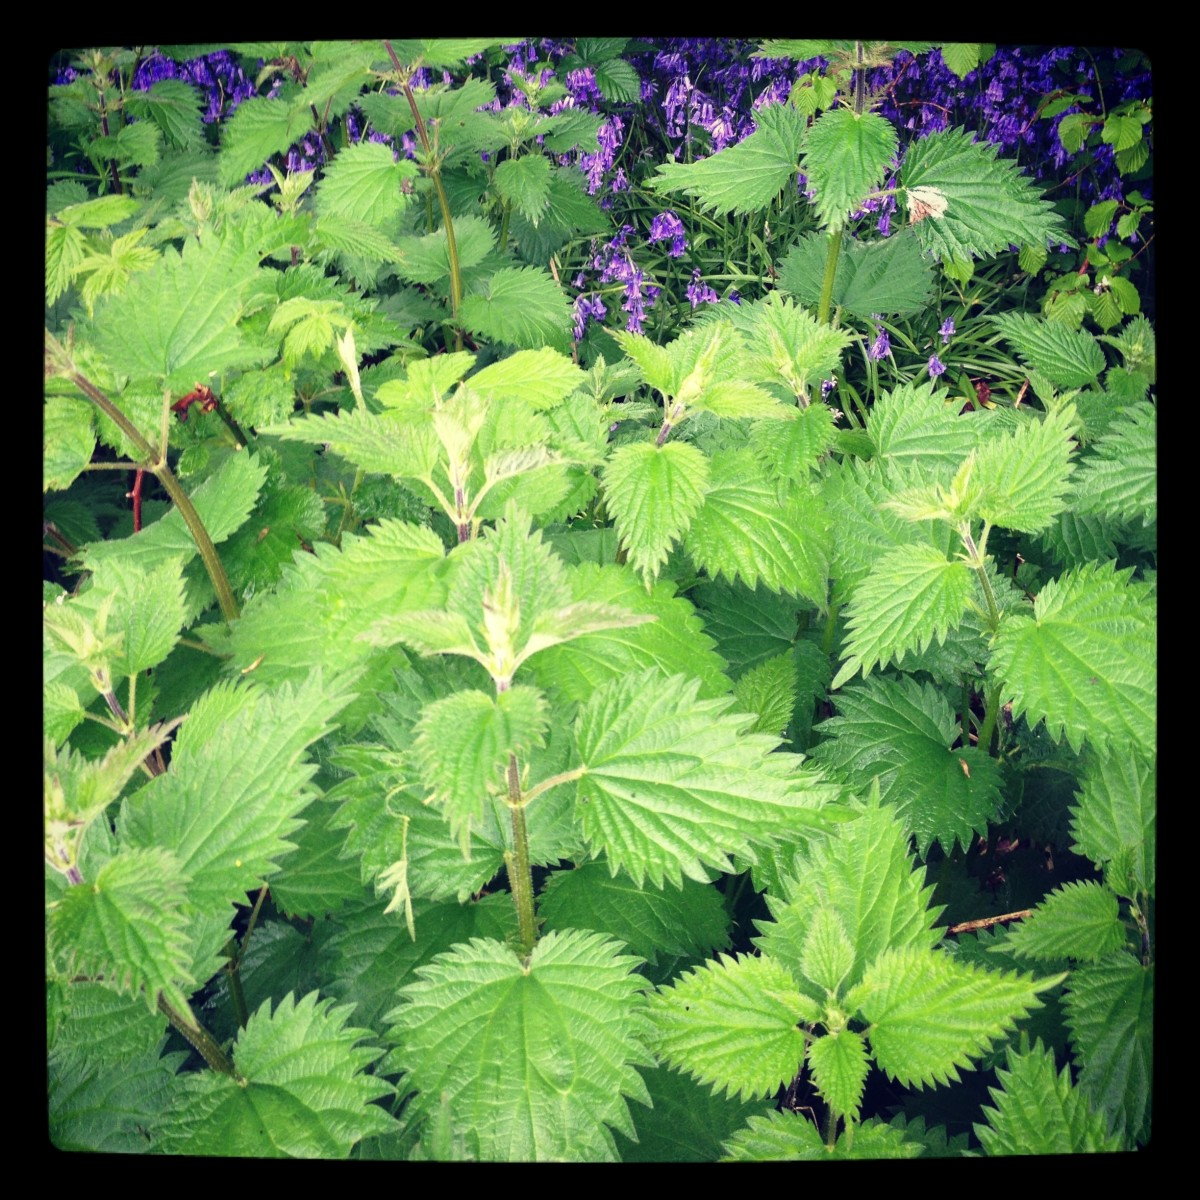 Stinging nettle patch in early spring